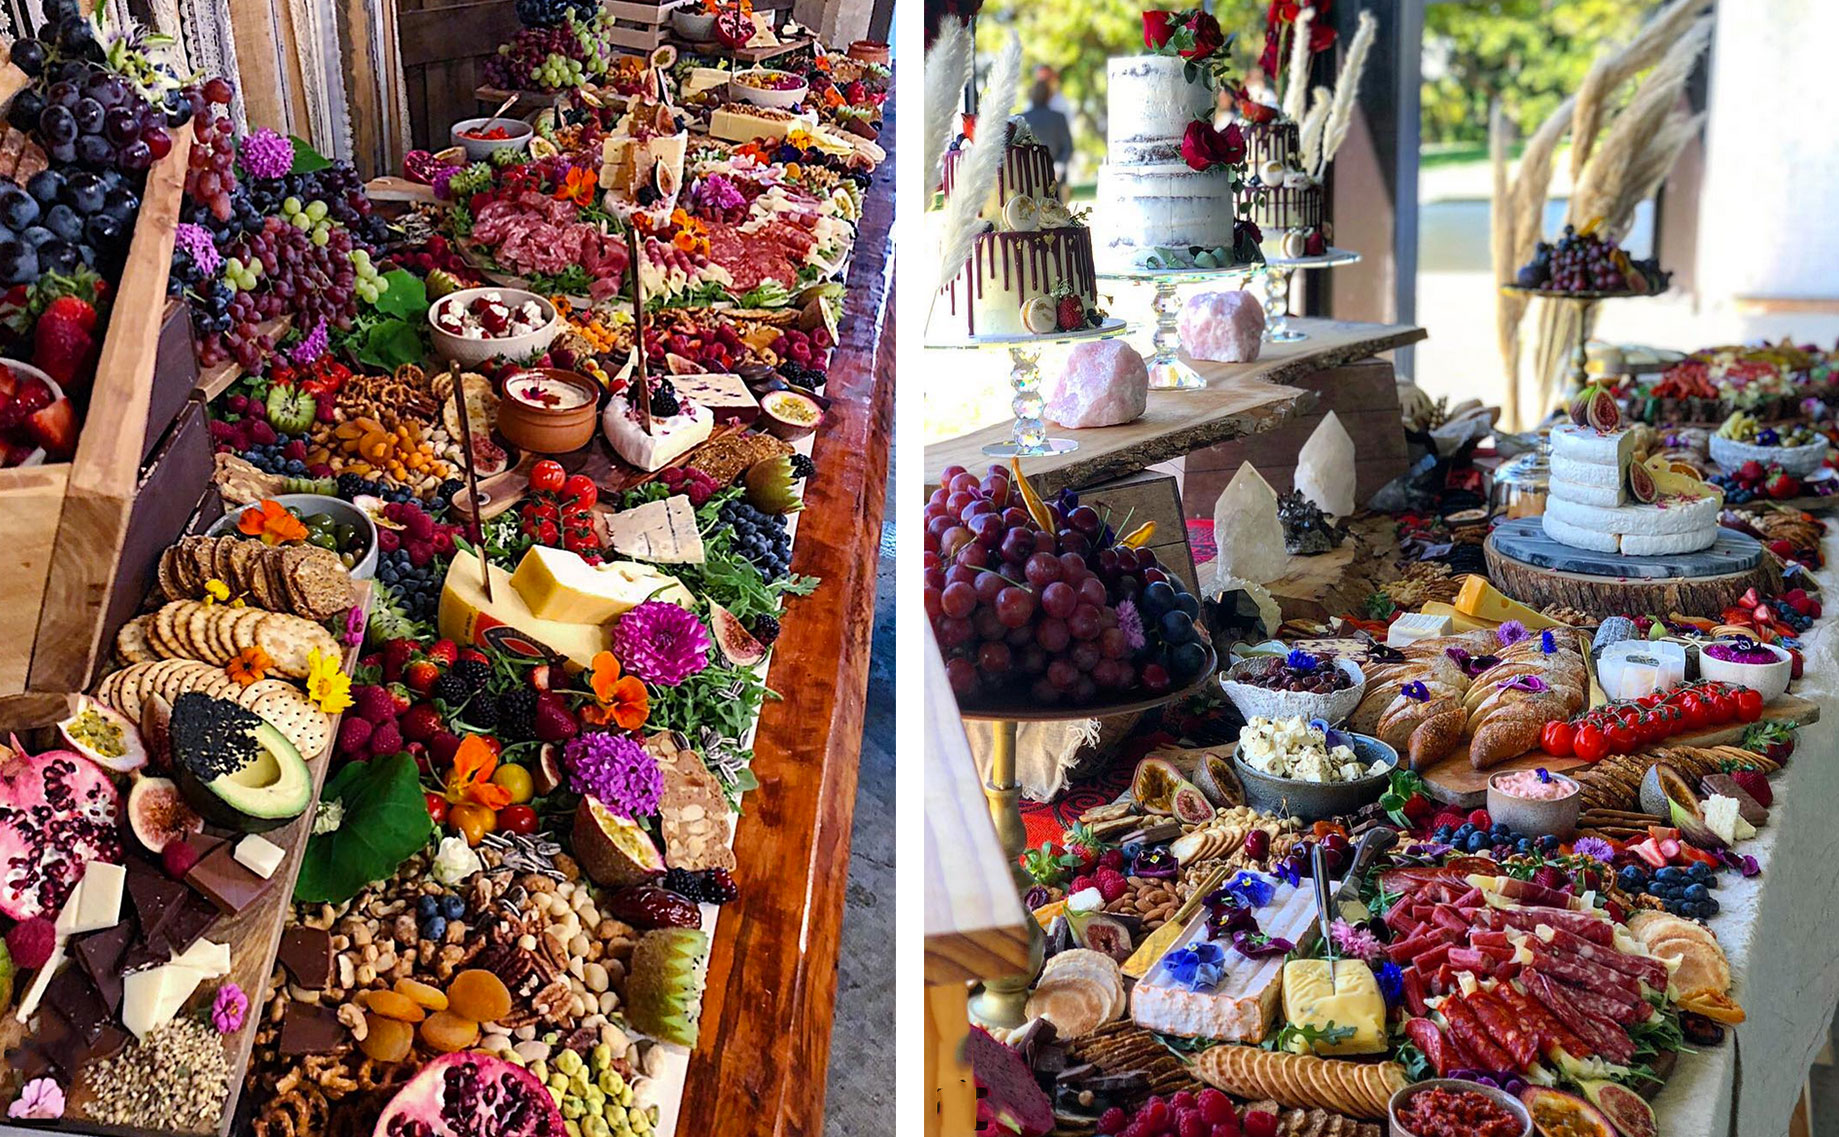 grazing tables at weddings